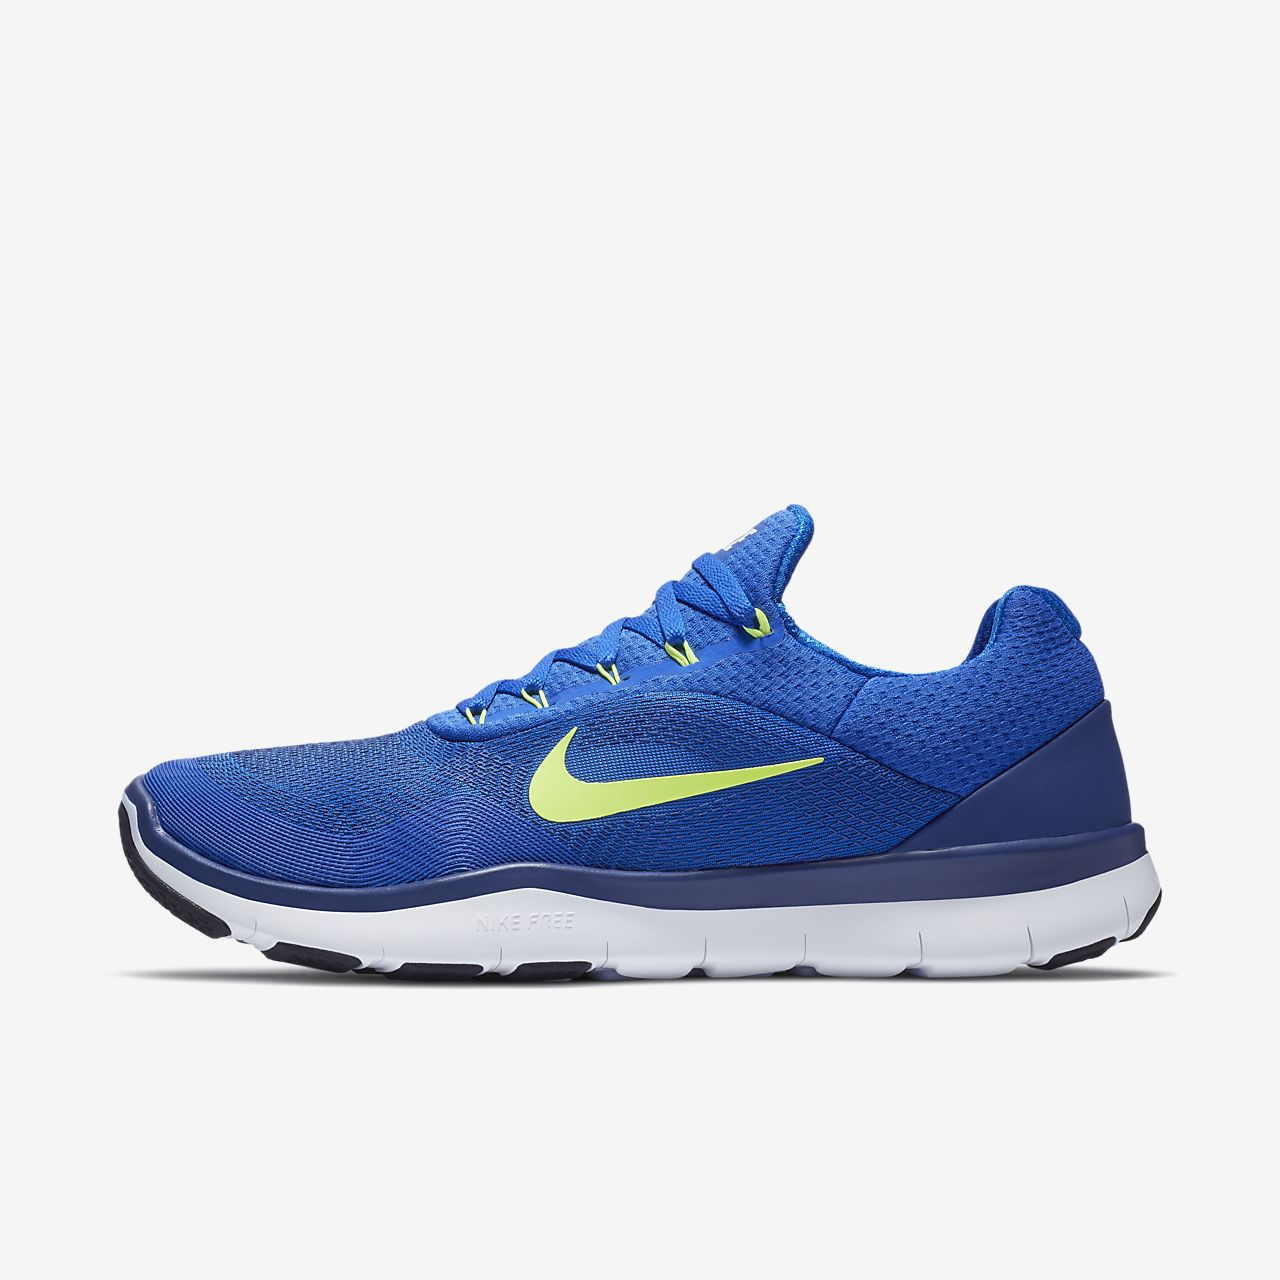 Men's Nike Free Trainer 3.0 Hyper Blue Volt Sneakers : K55p1799